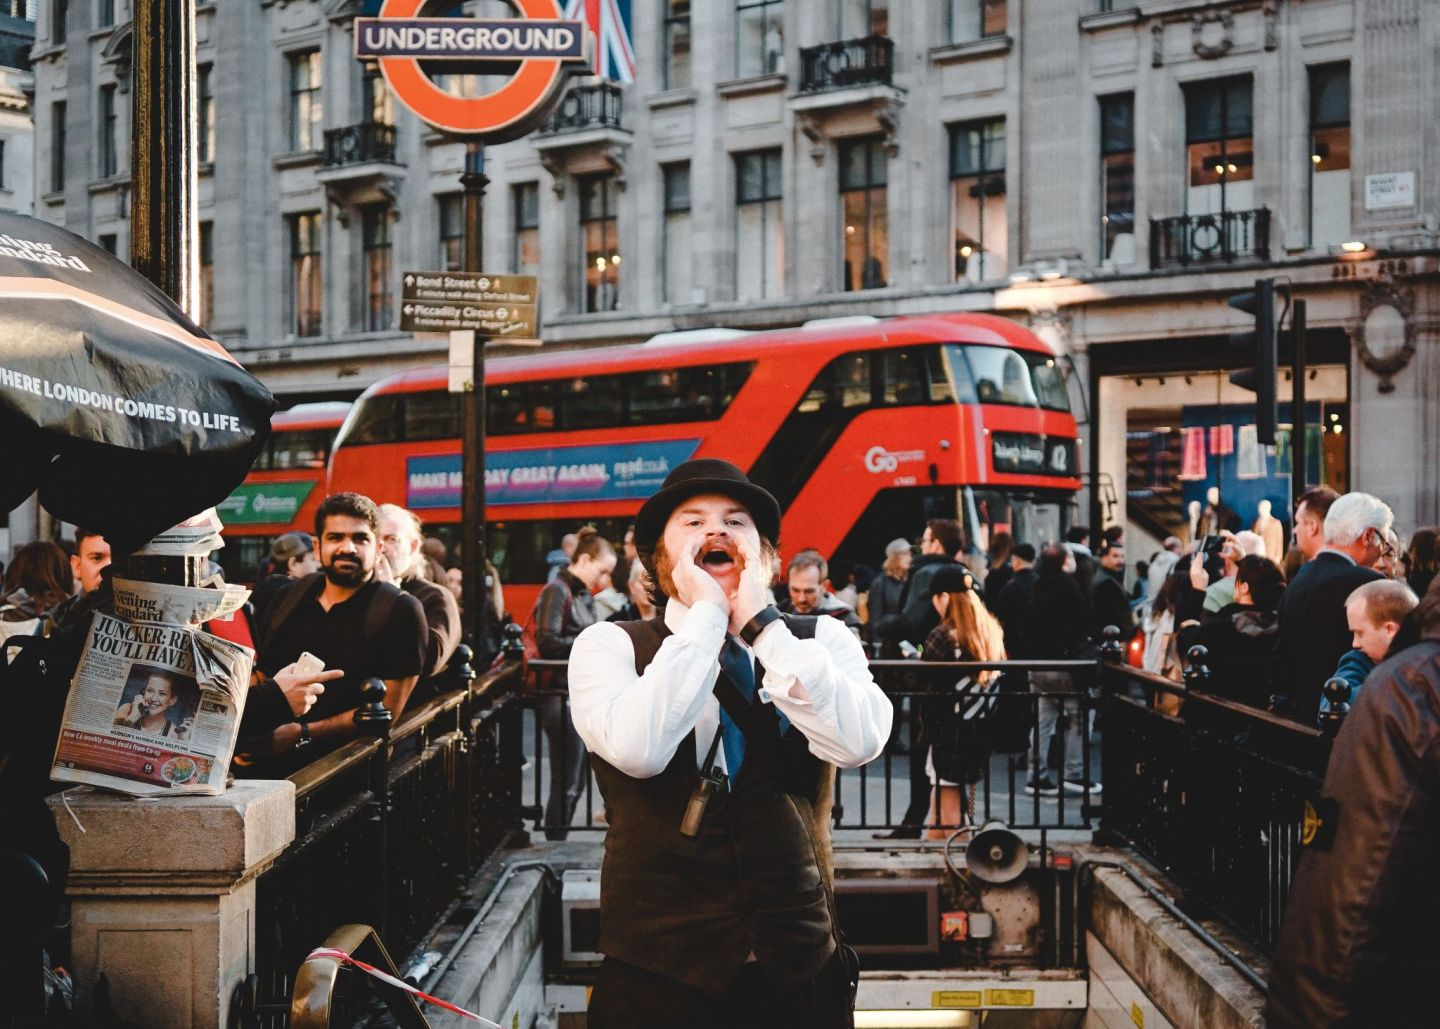 Free Tours by Foot London abi-ismail-383794-unsplash